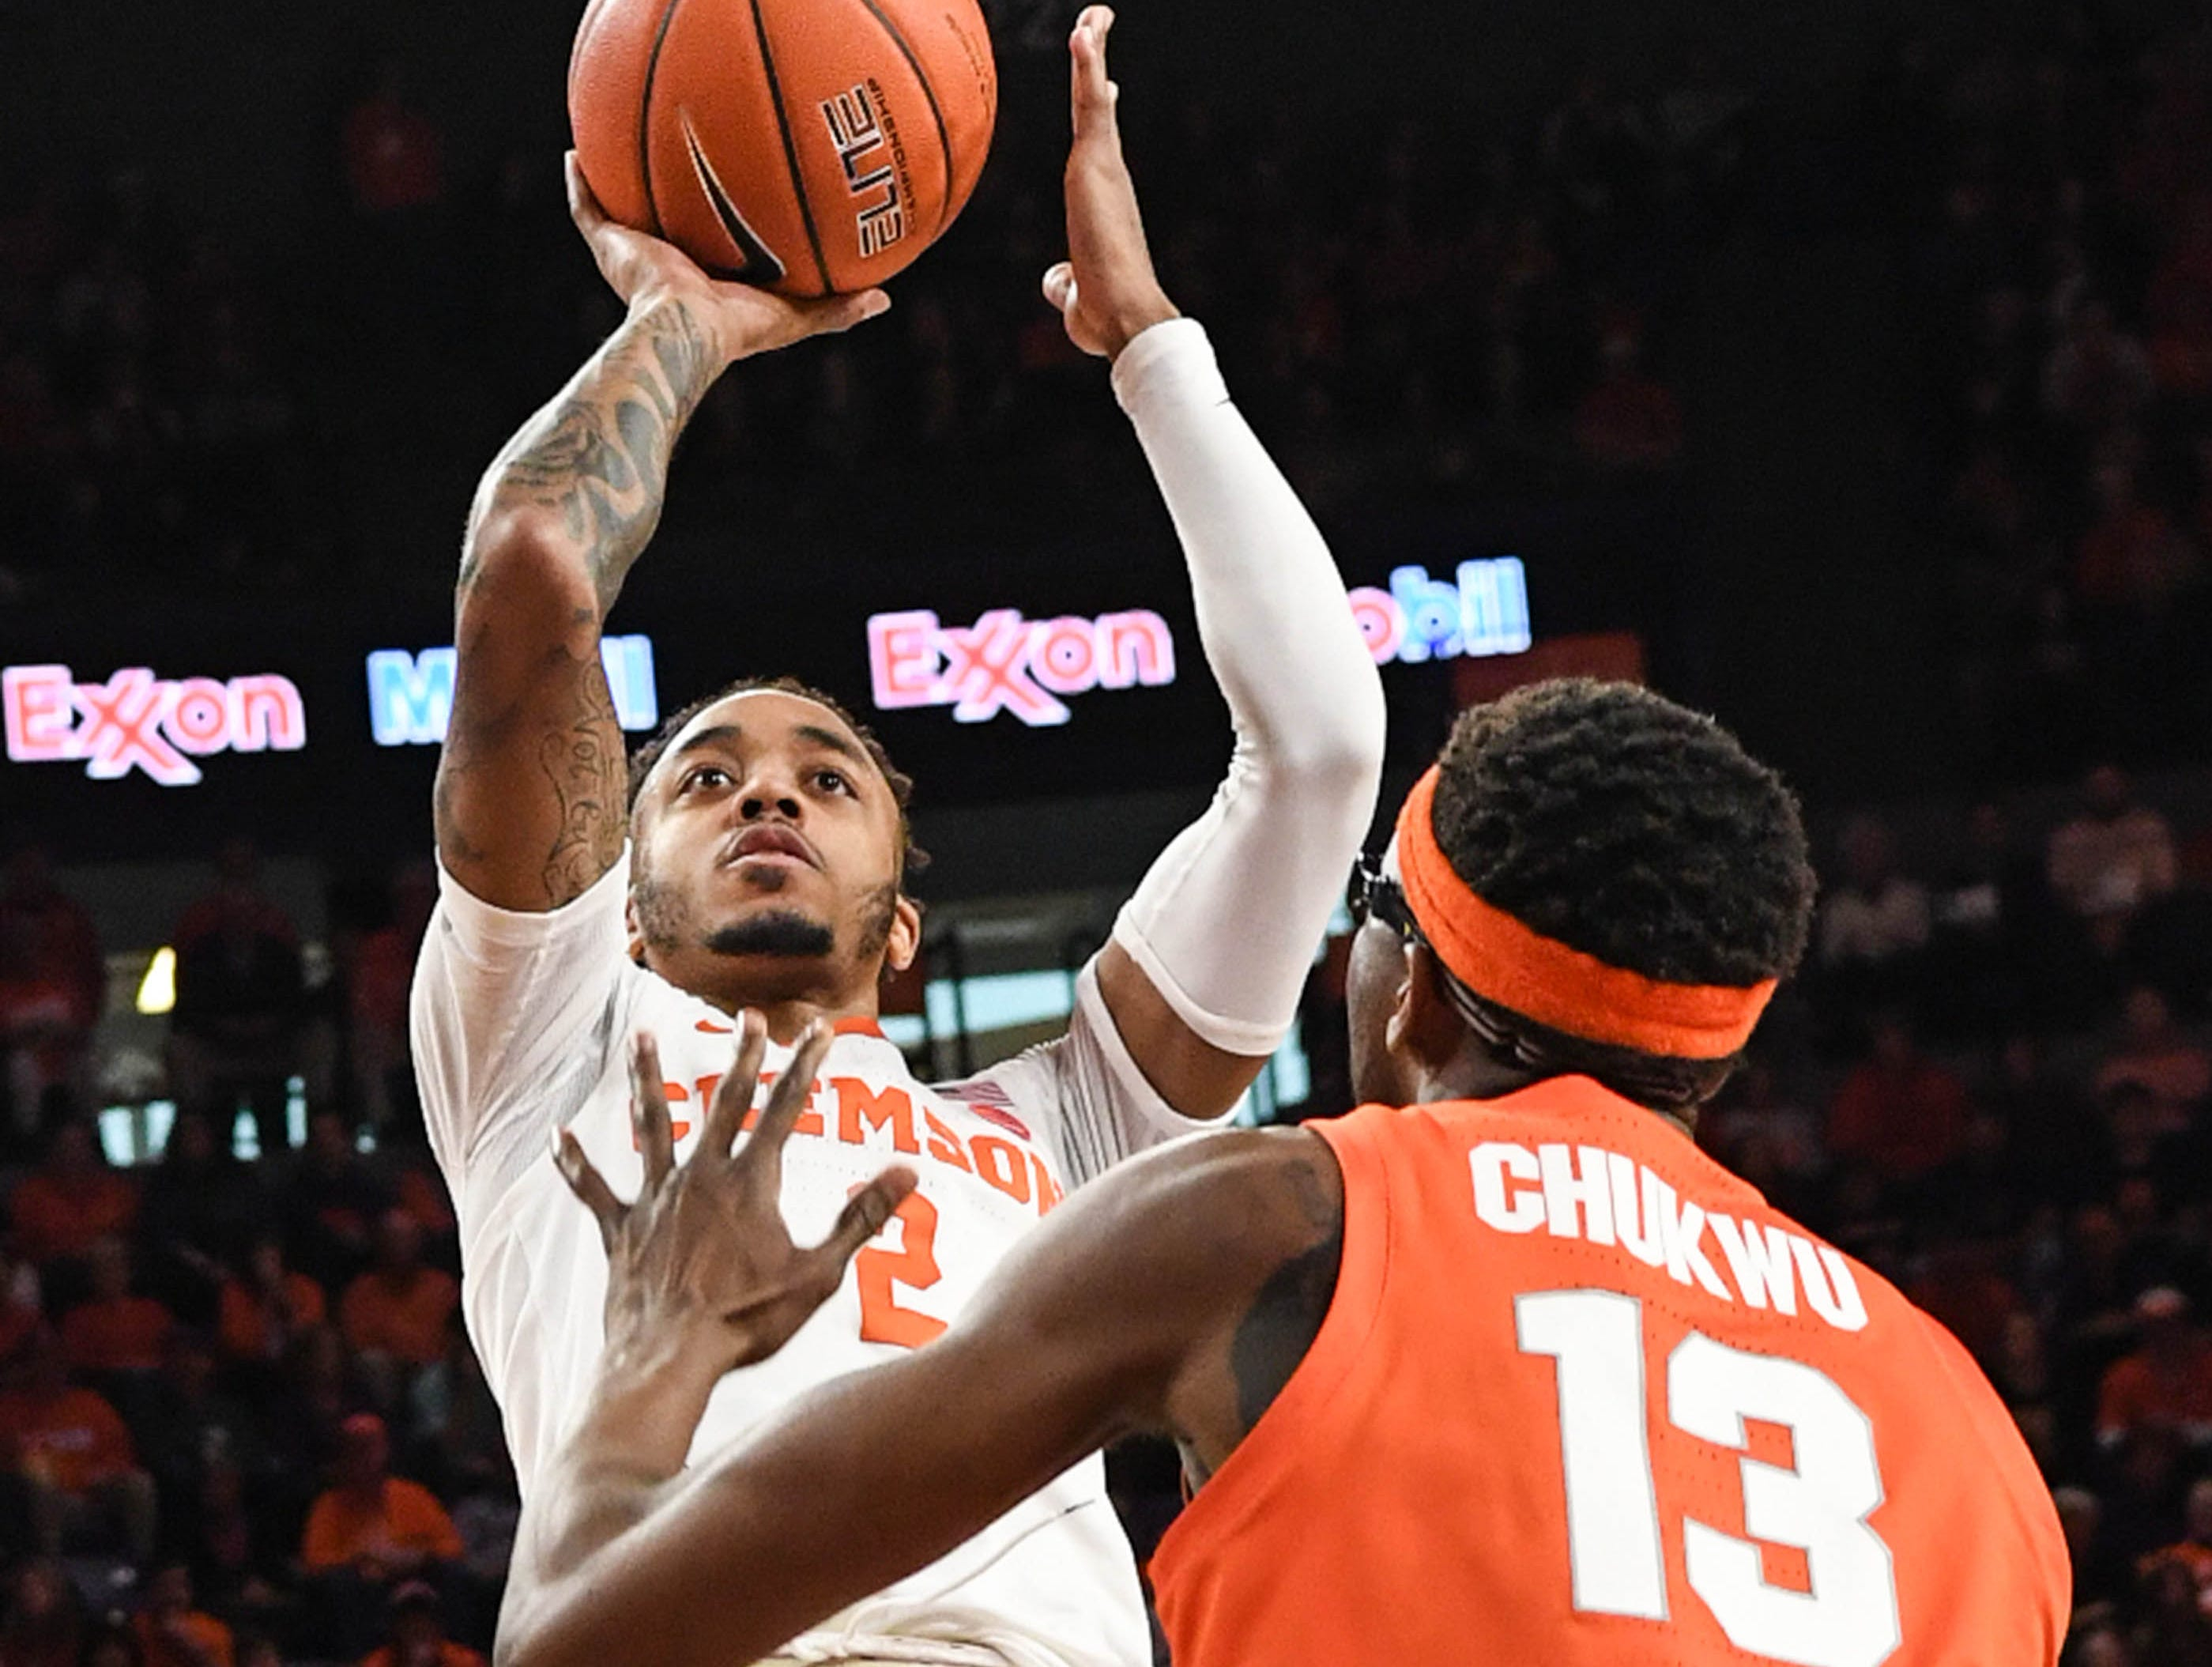 Clemson guard Marcquise Reed (2) shoots over Syracuse center Paschal Chukwu(13) during the second half in Littlejohn Coliseum in Clemson Saturday, March 9, 2019.